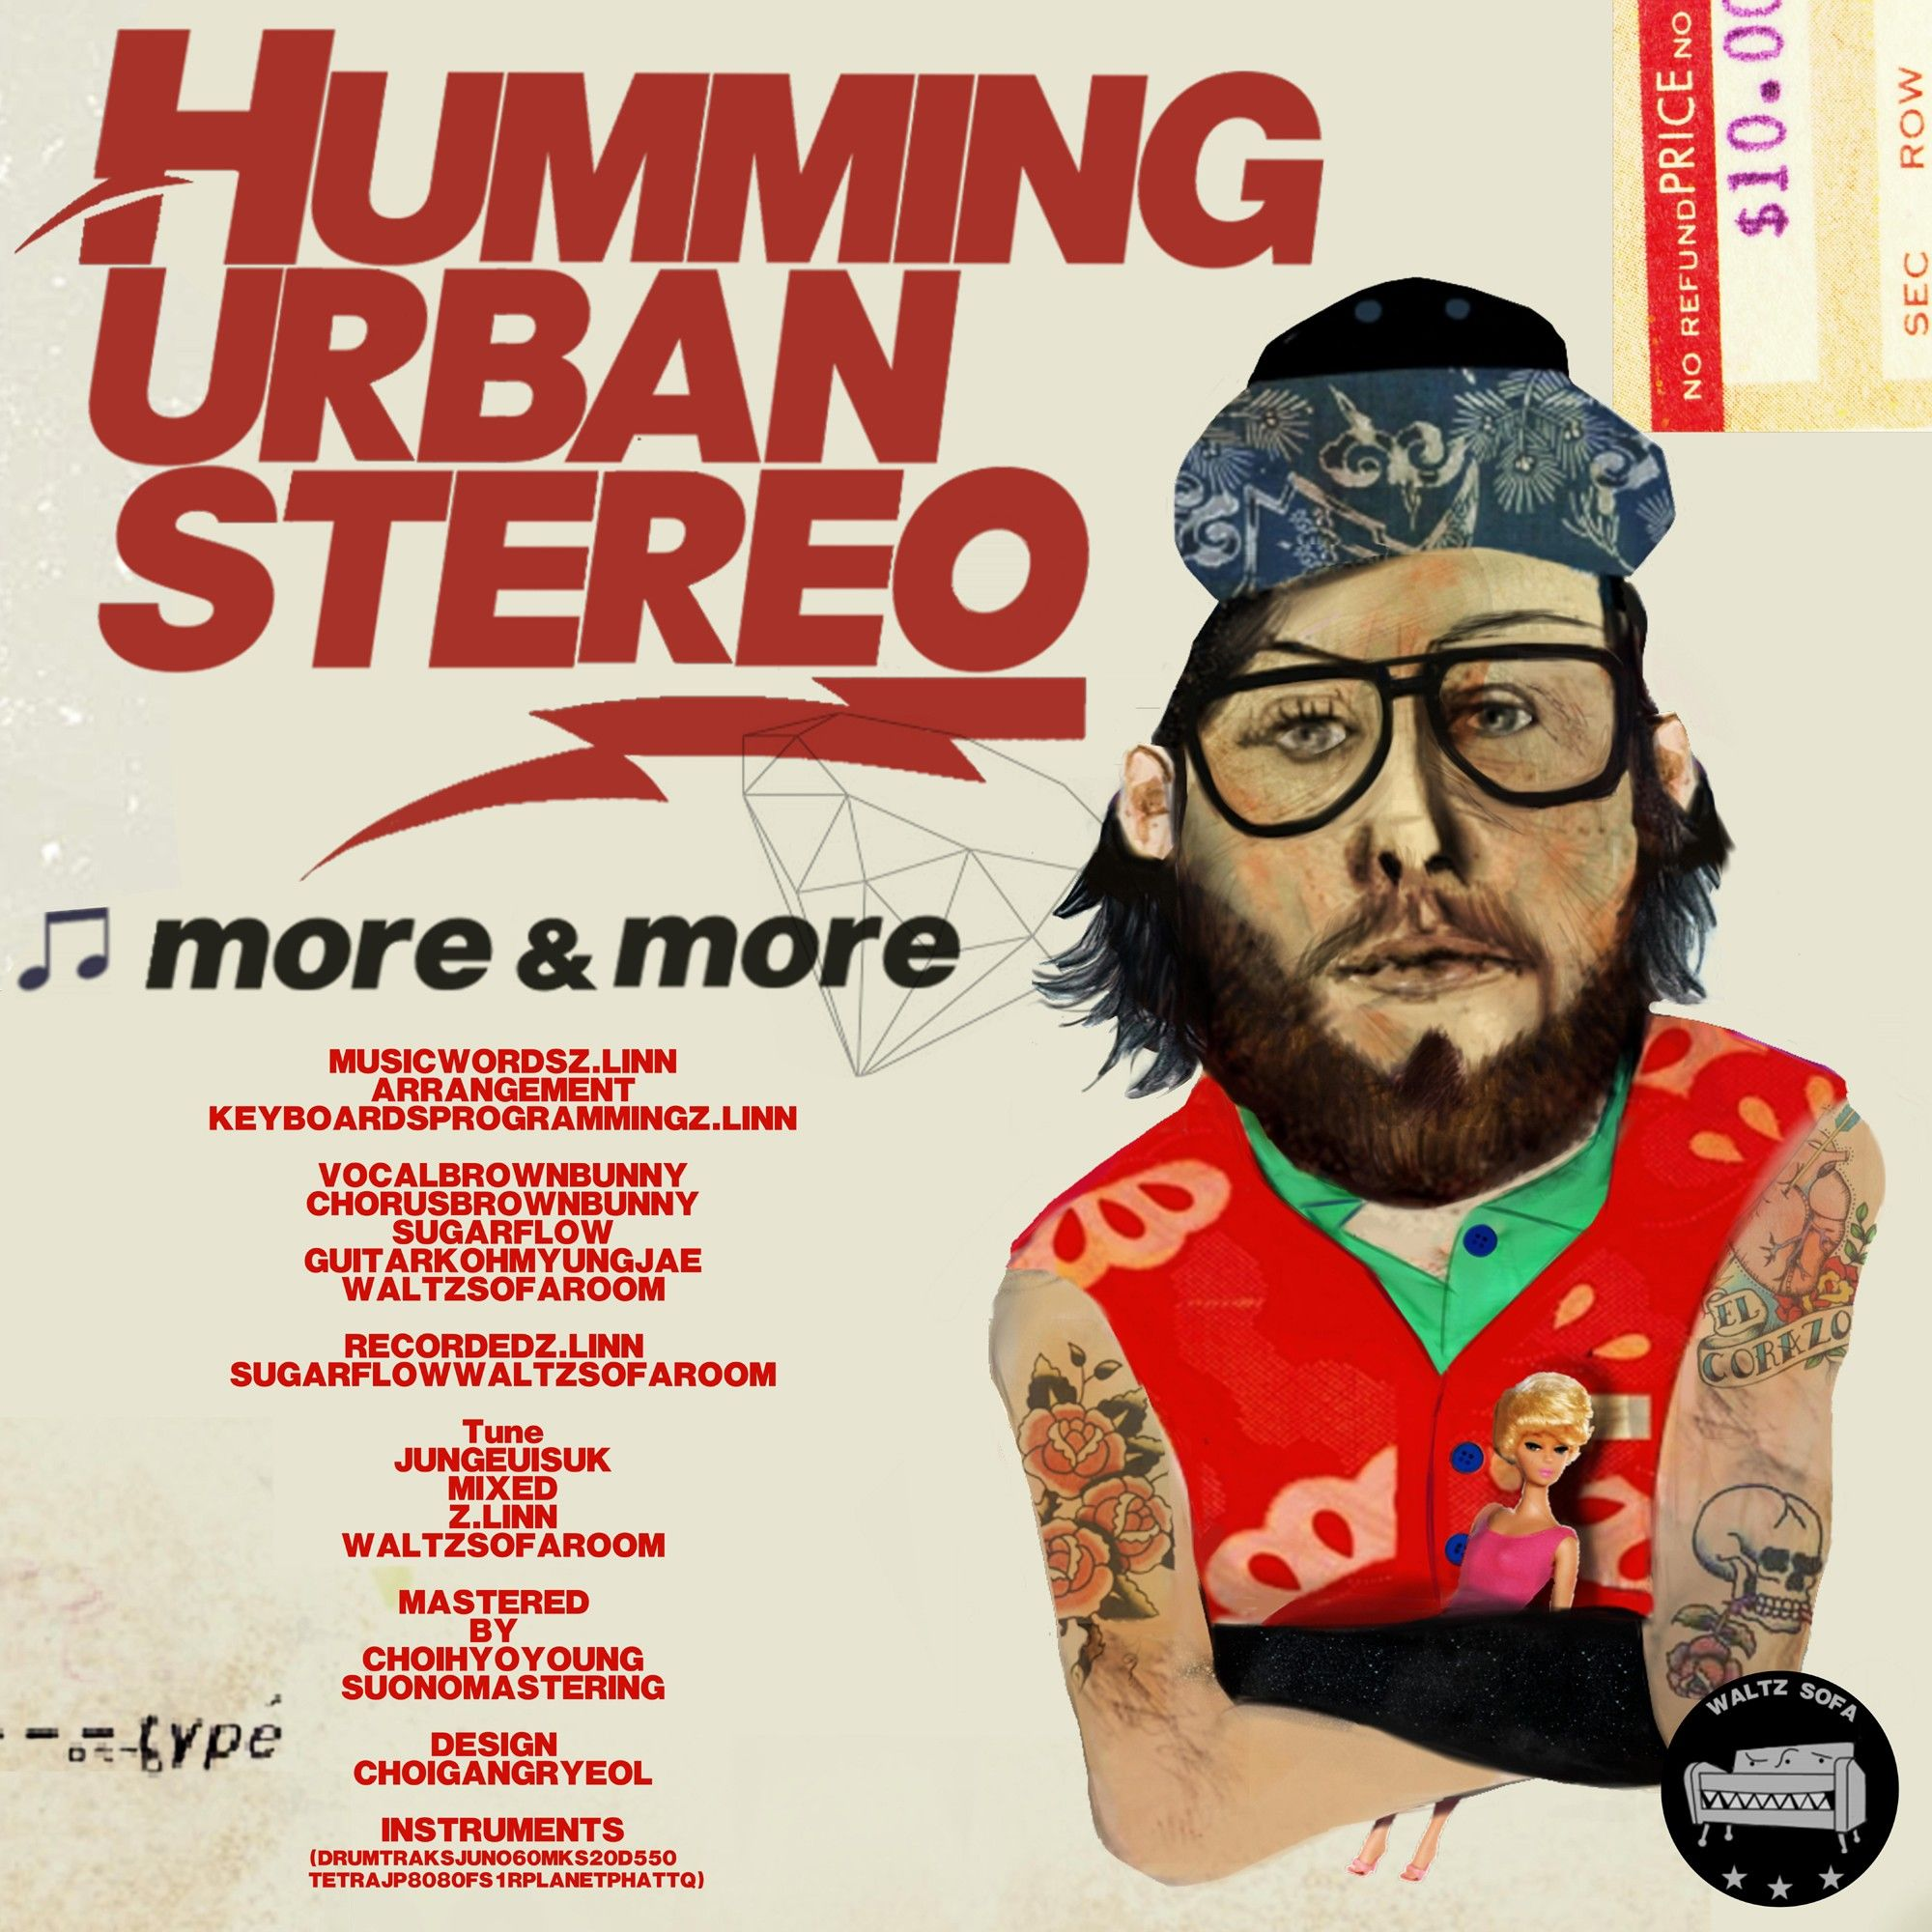 (Single) Humming Urban Stereo - more & more